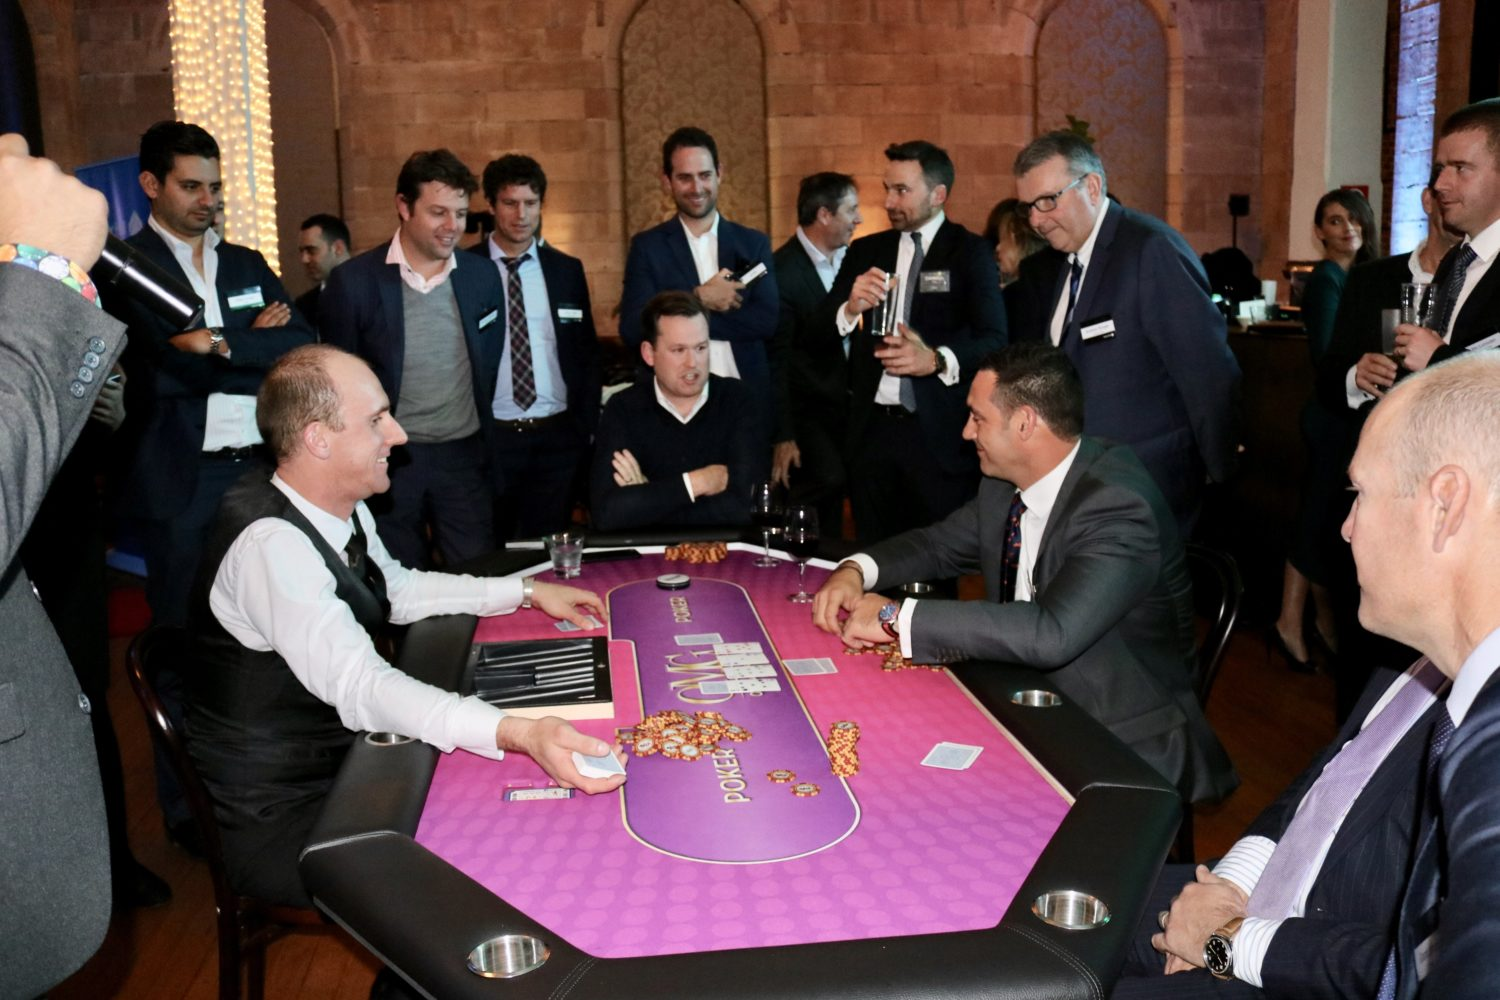 Corporate Poker Tournament Sydney